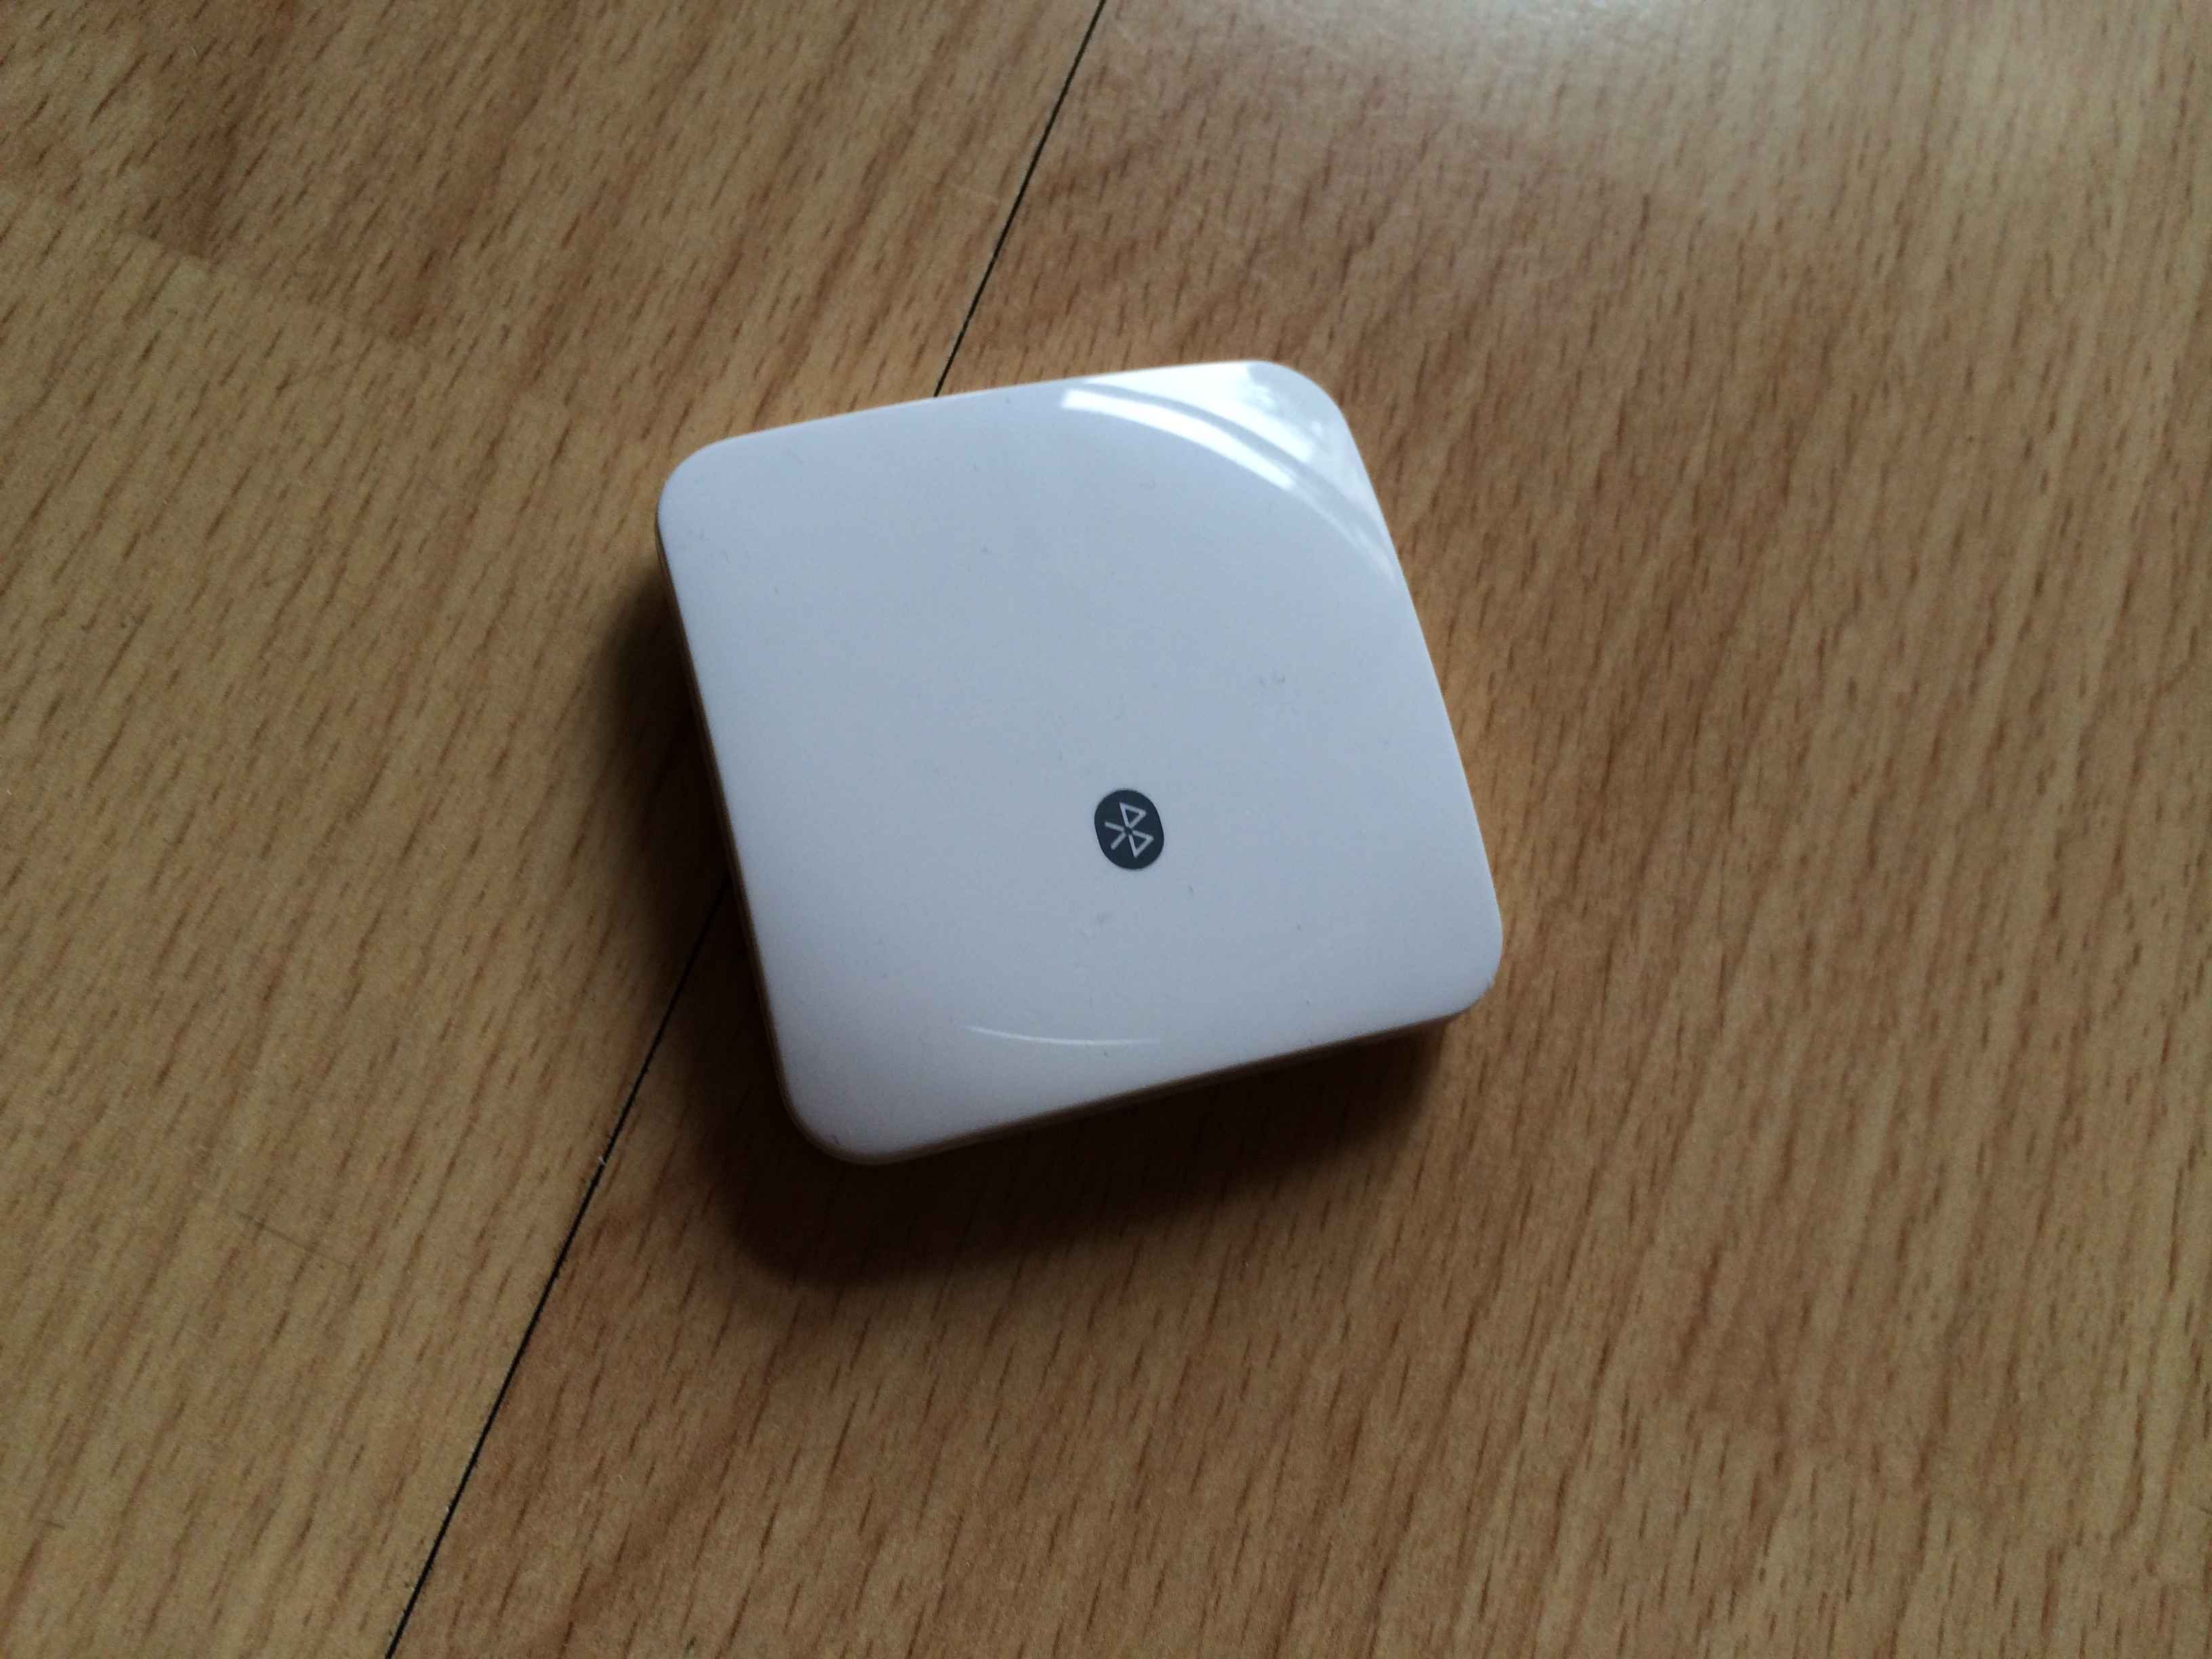 Im Test: InLine Bluetooth zu Apple Docking Konverter 1